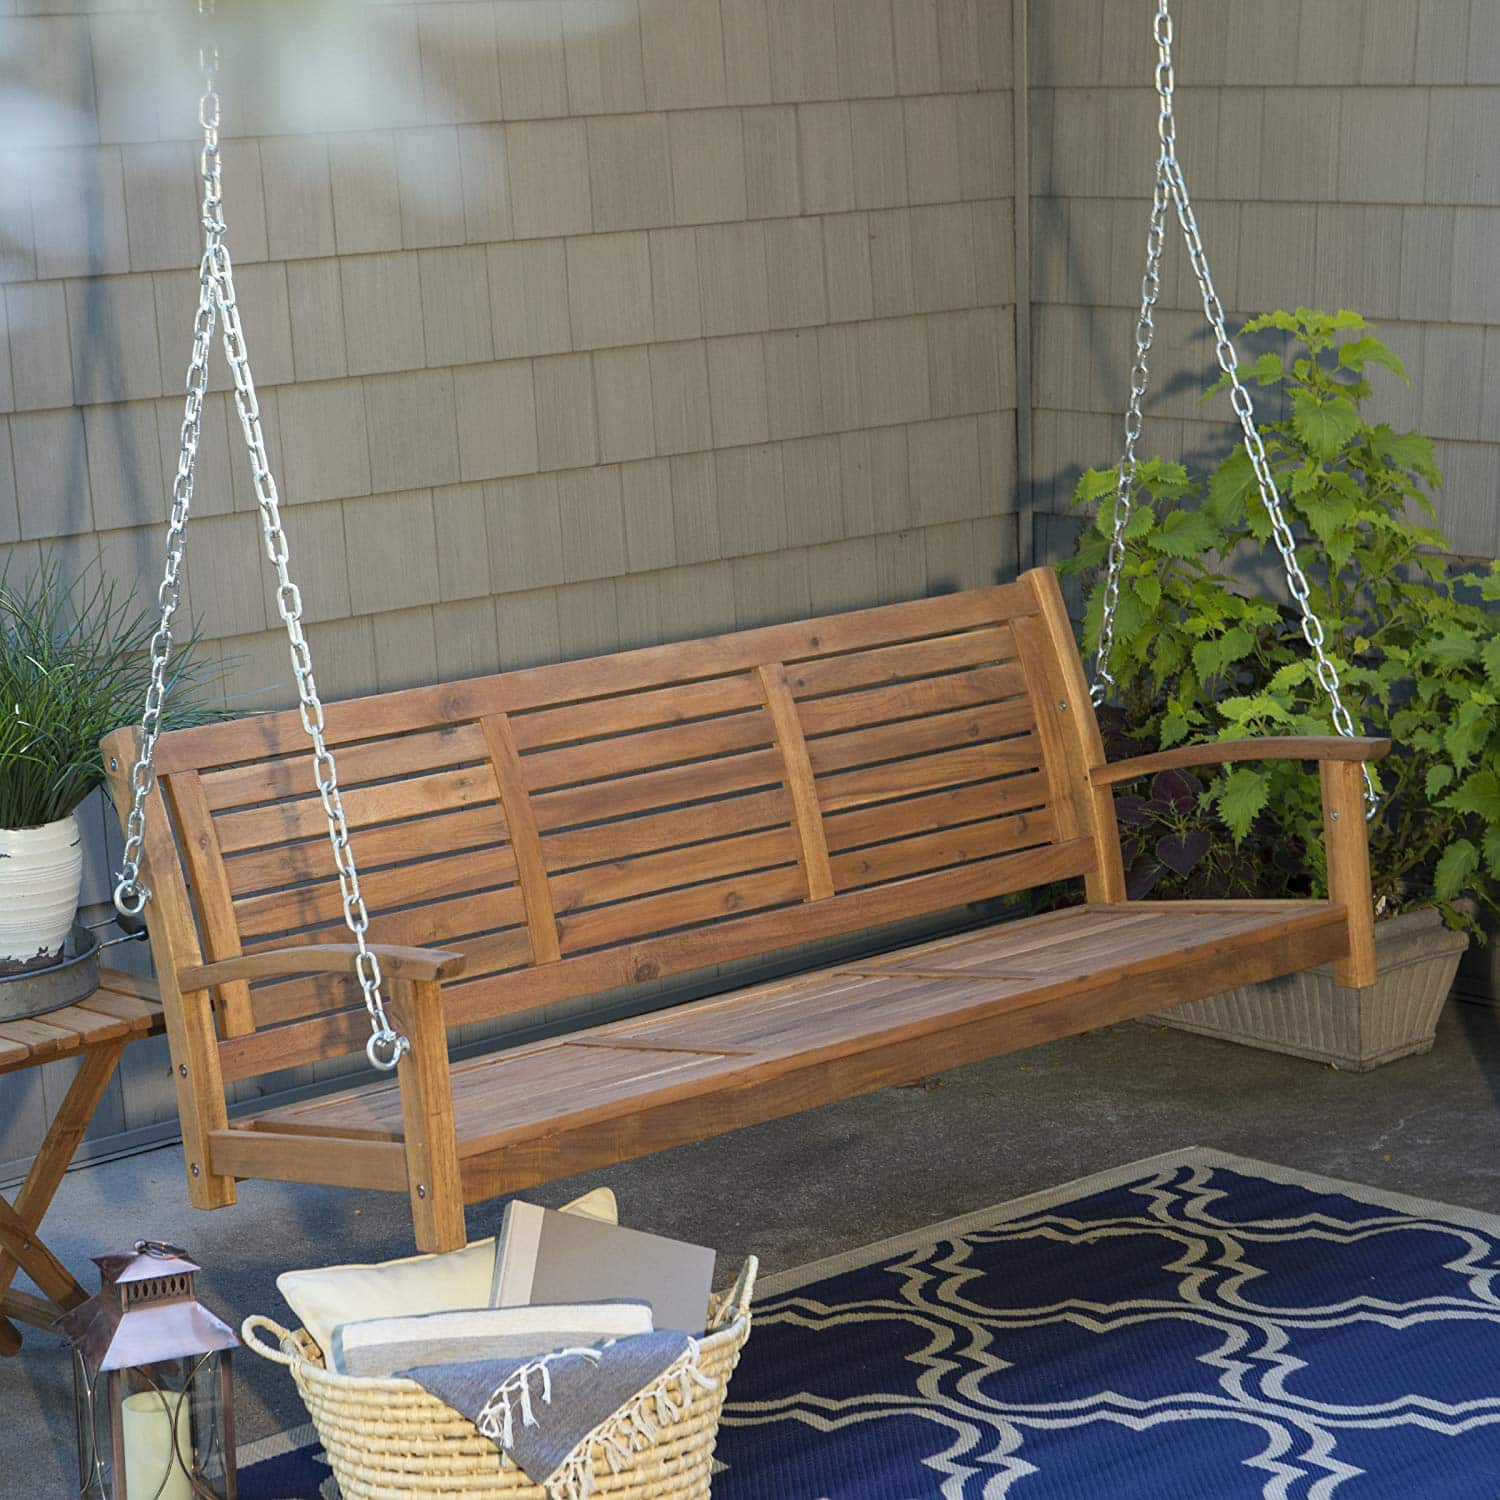 Top 10 Best Porch Swings In 2020 Reviews | Buyer's Guide Throughout 3 Person Natural Cedar Wood Outdoor Swings (View 17 of 25)